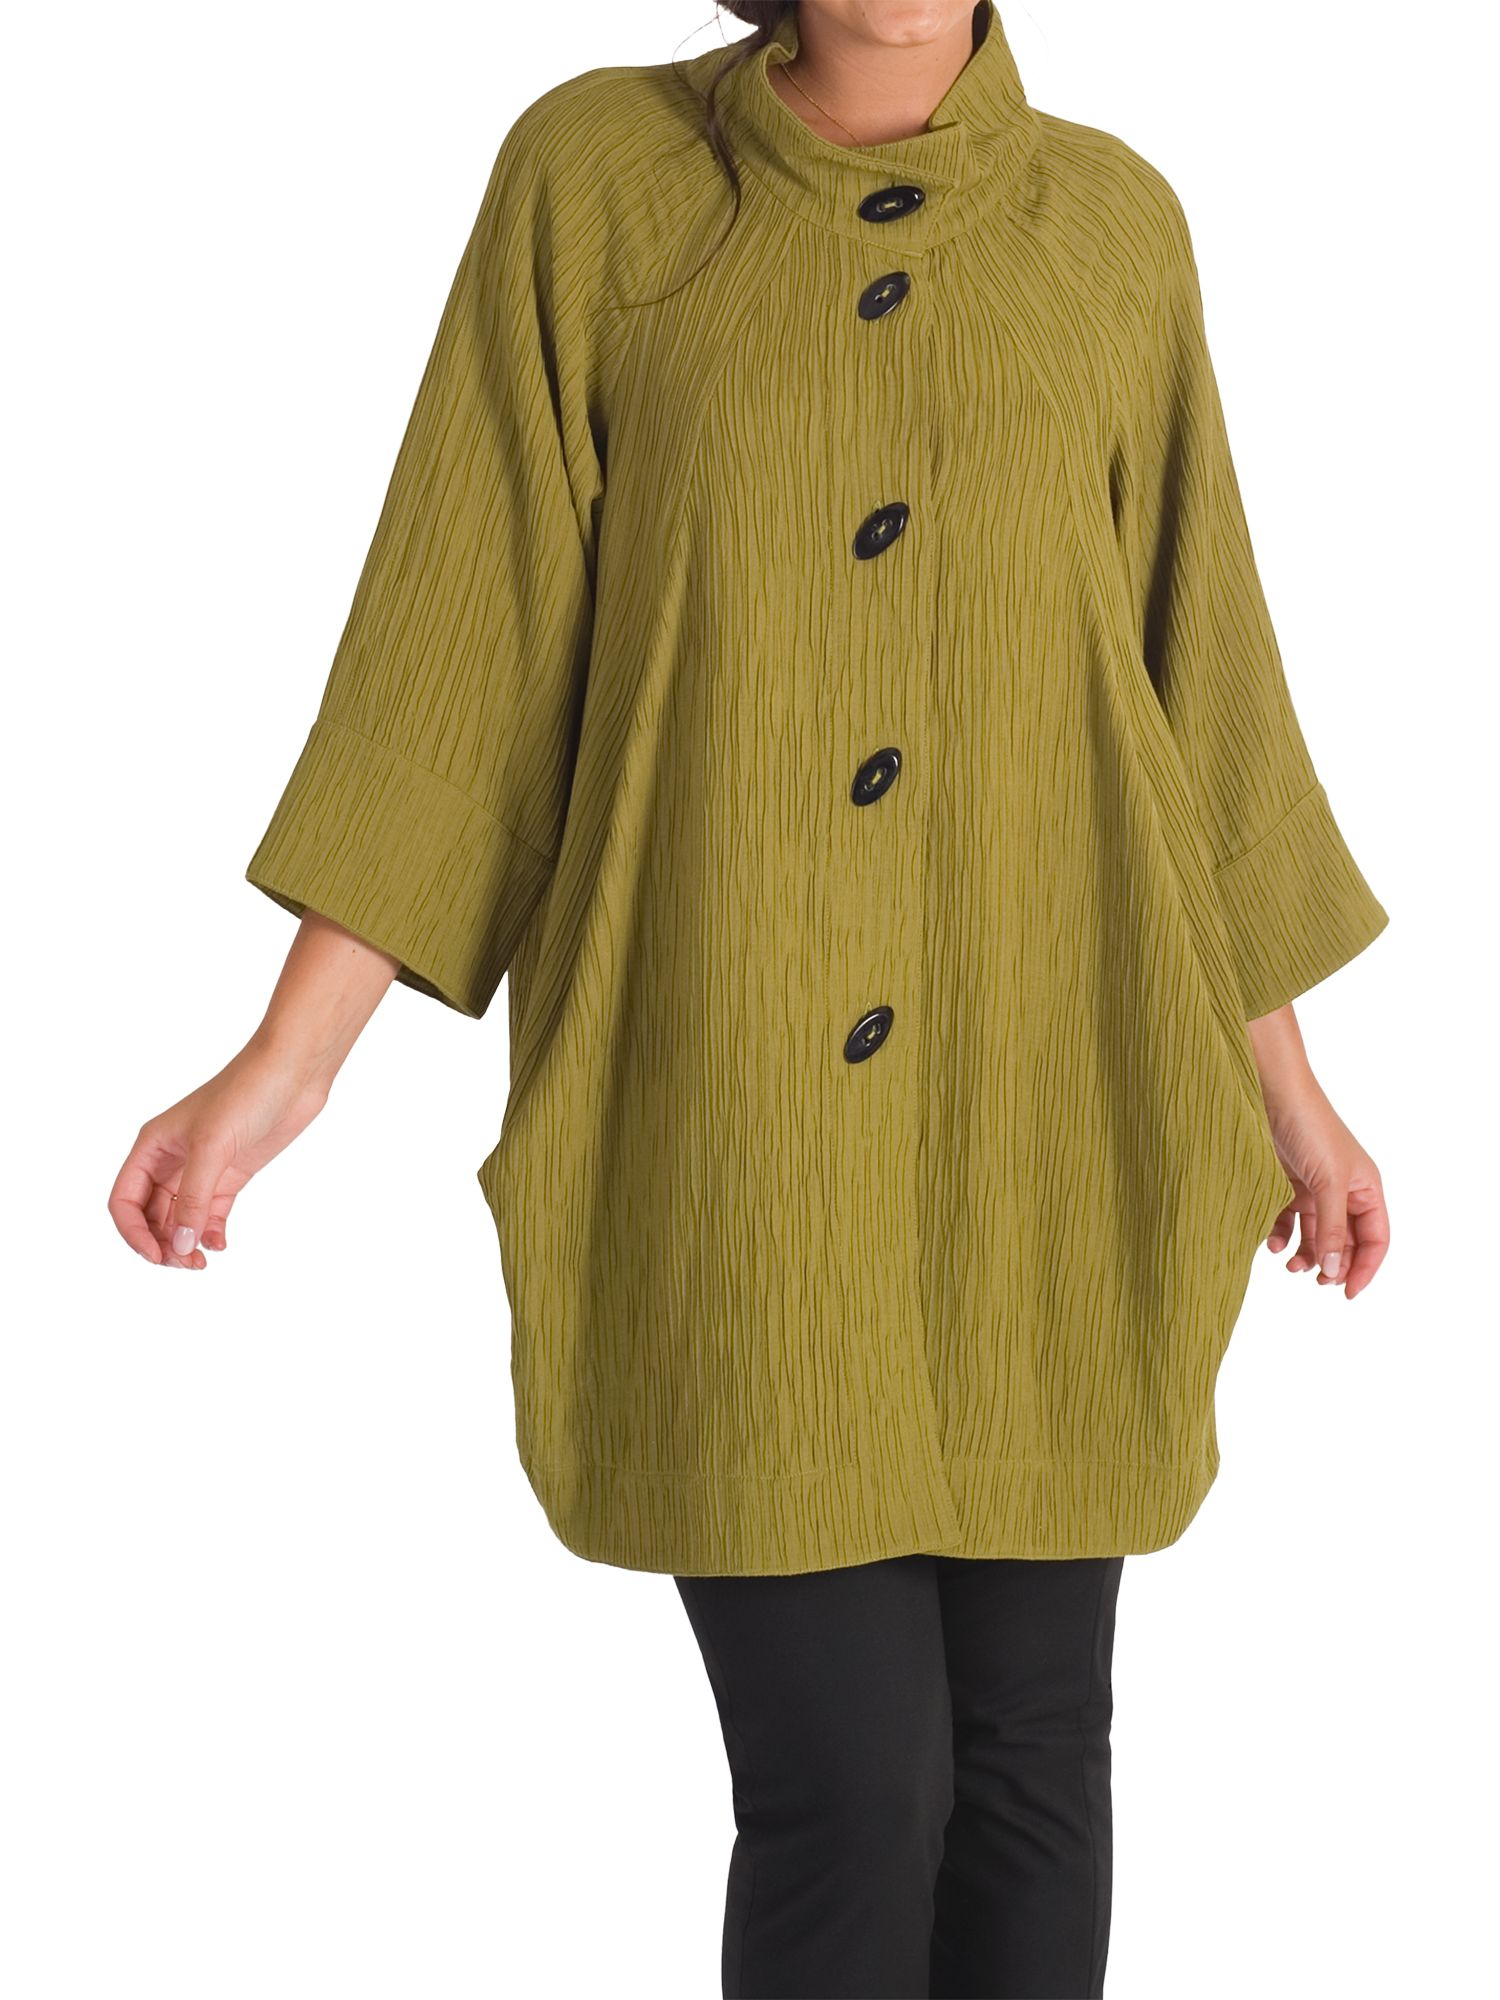 Chesca Chesca Textured Jacquard Coat, Lime